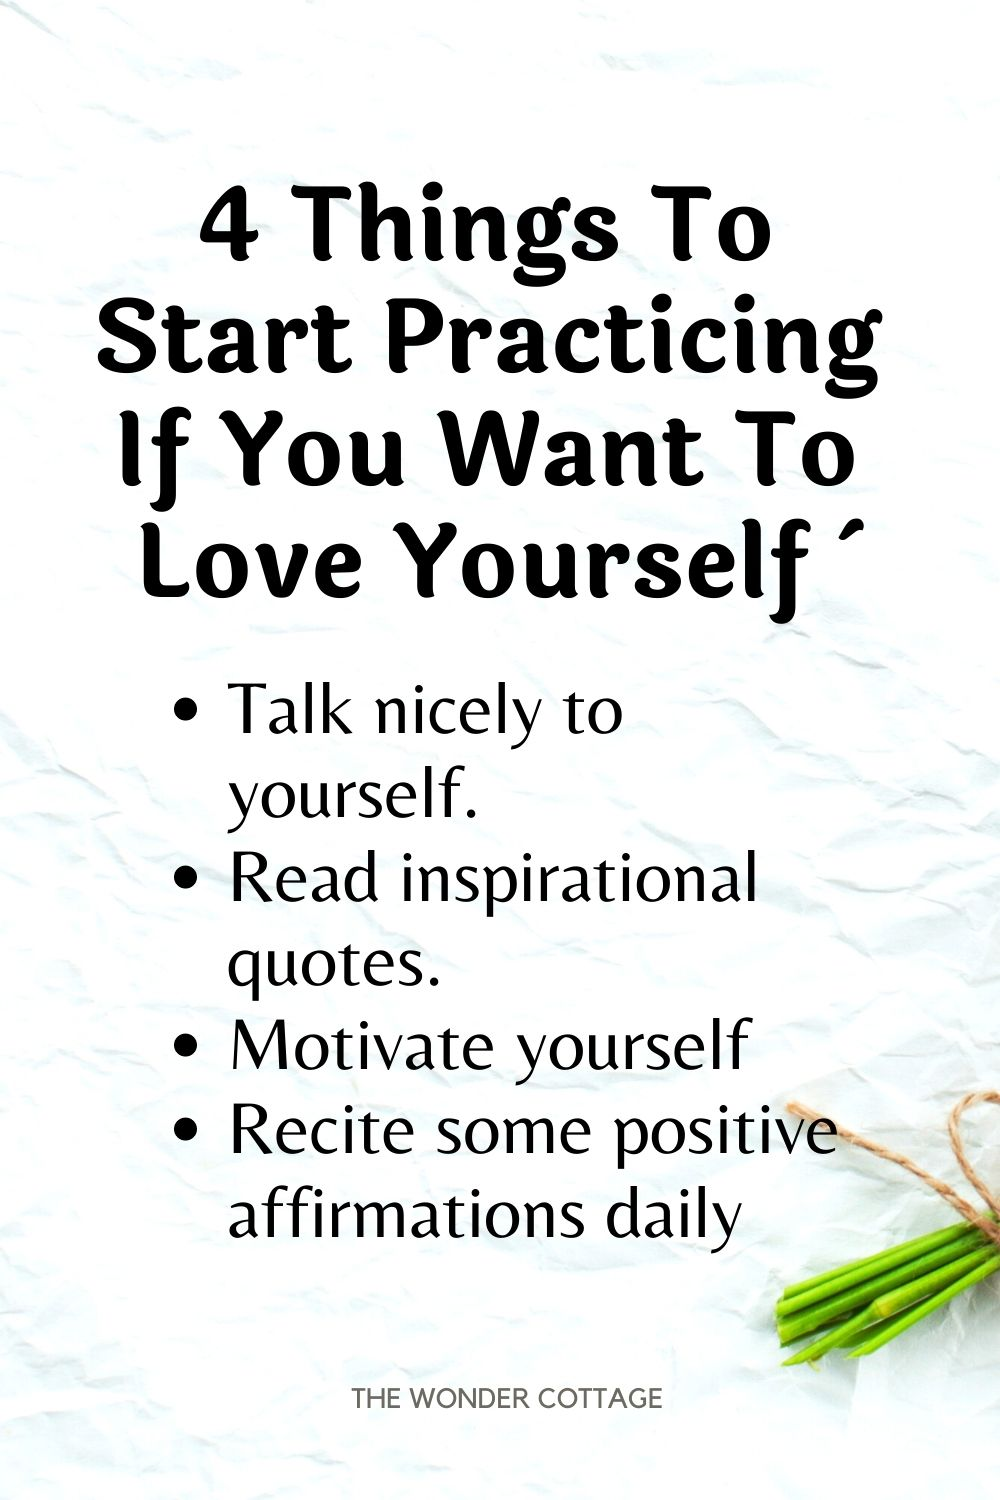 4 things to start practicing if you want to love yourself